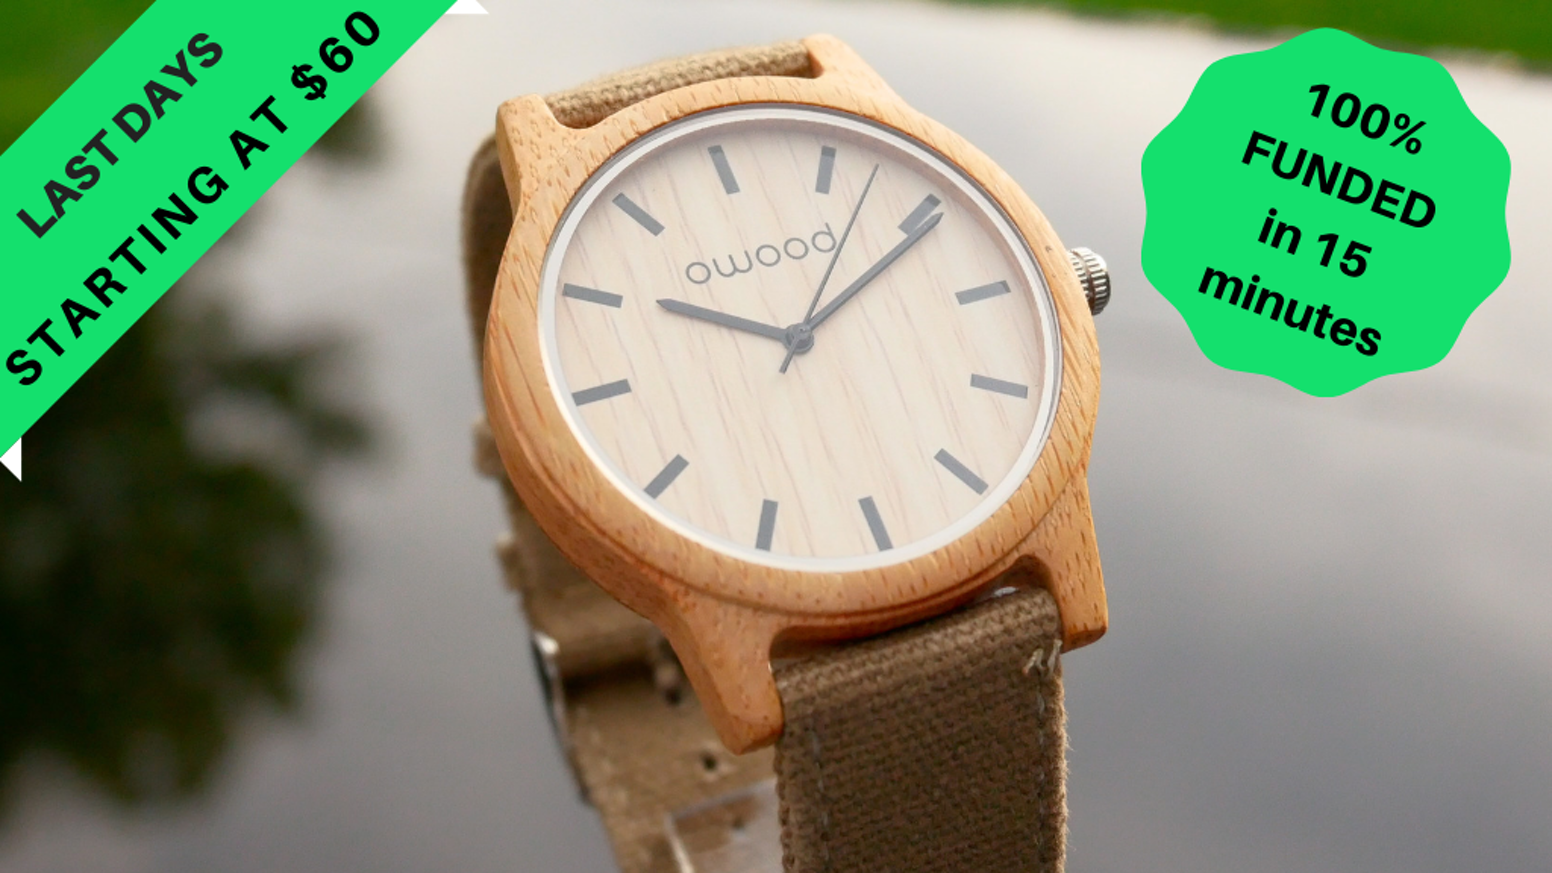 Timeless, Minimalist & High quality Wooden Watches Handmade with exotic woods. Explore your nature™.